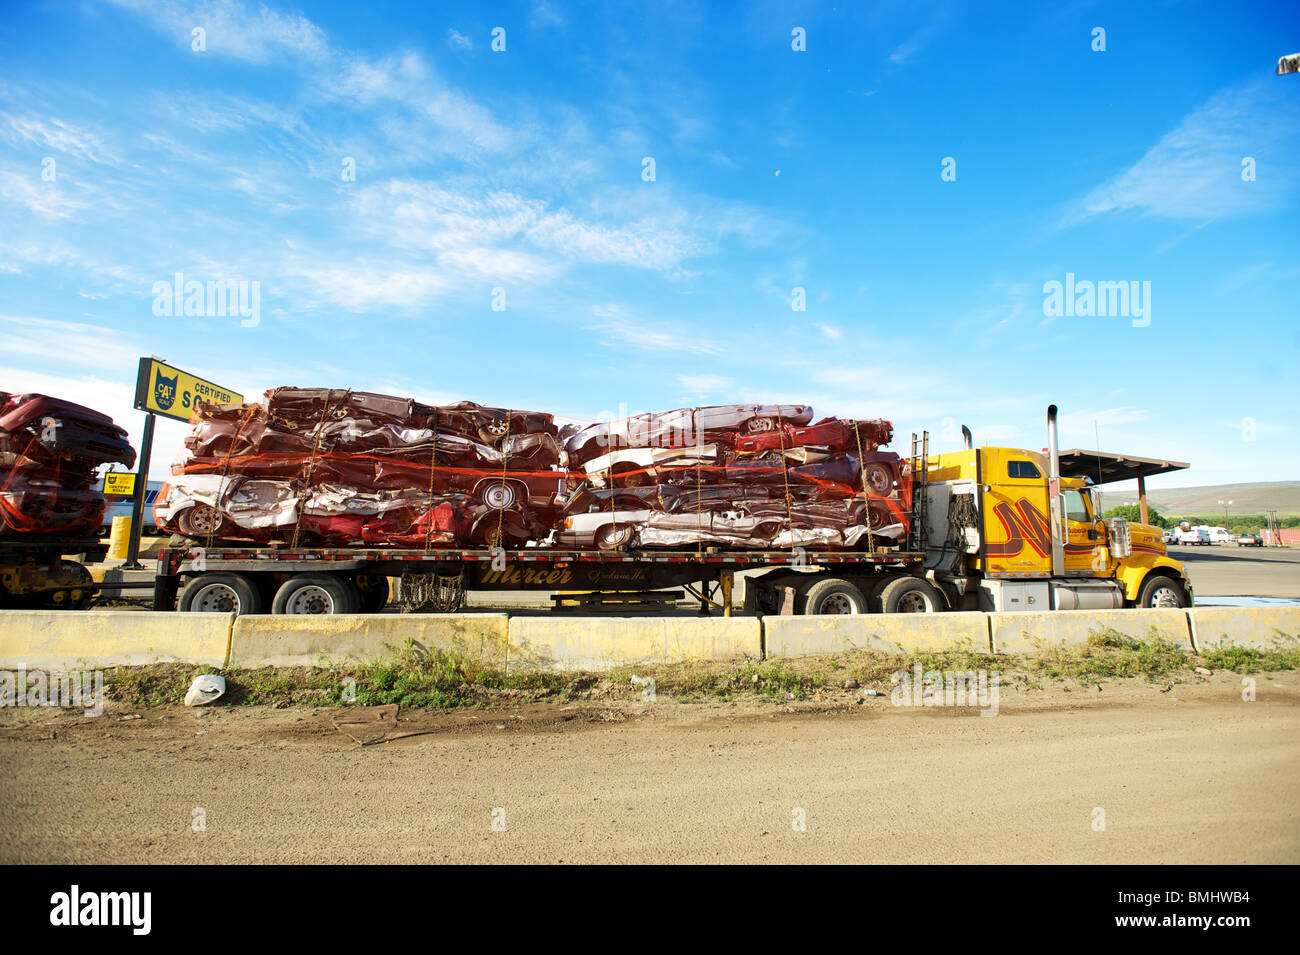 Crushed cars on a truck bed. - Stock Image